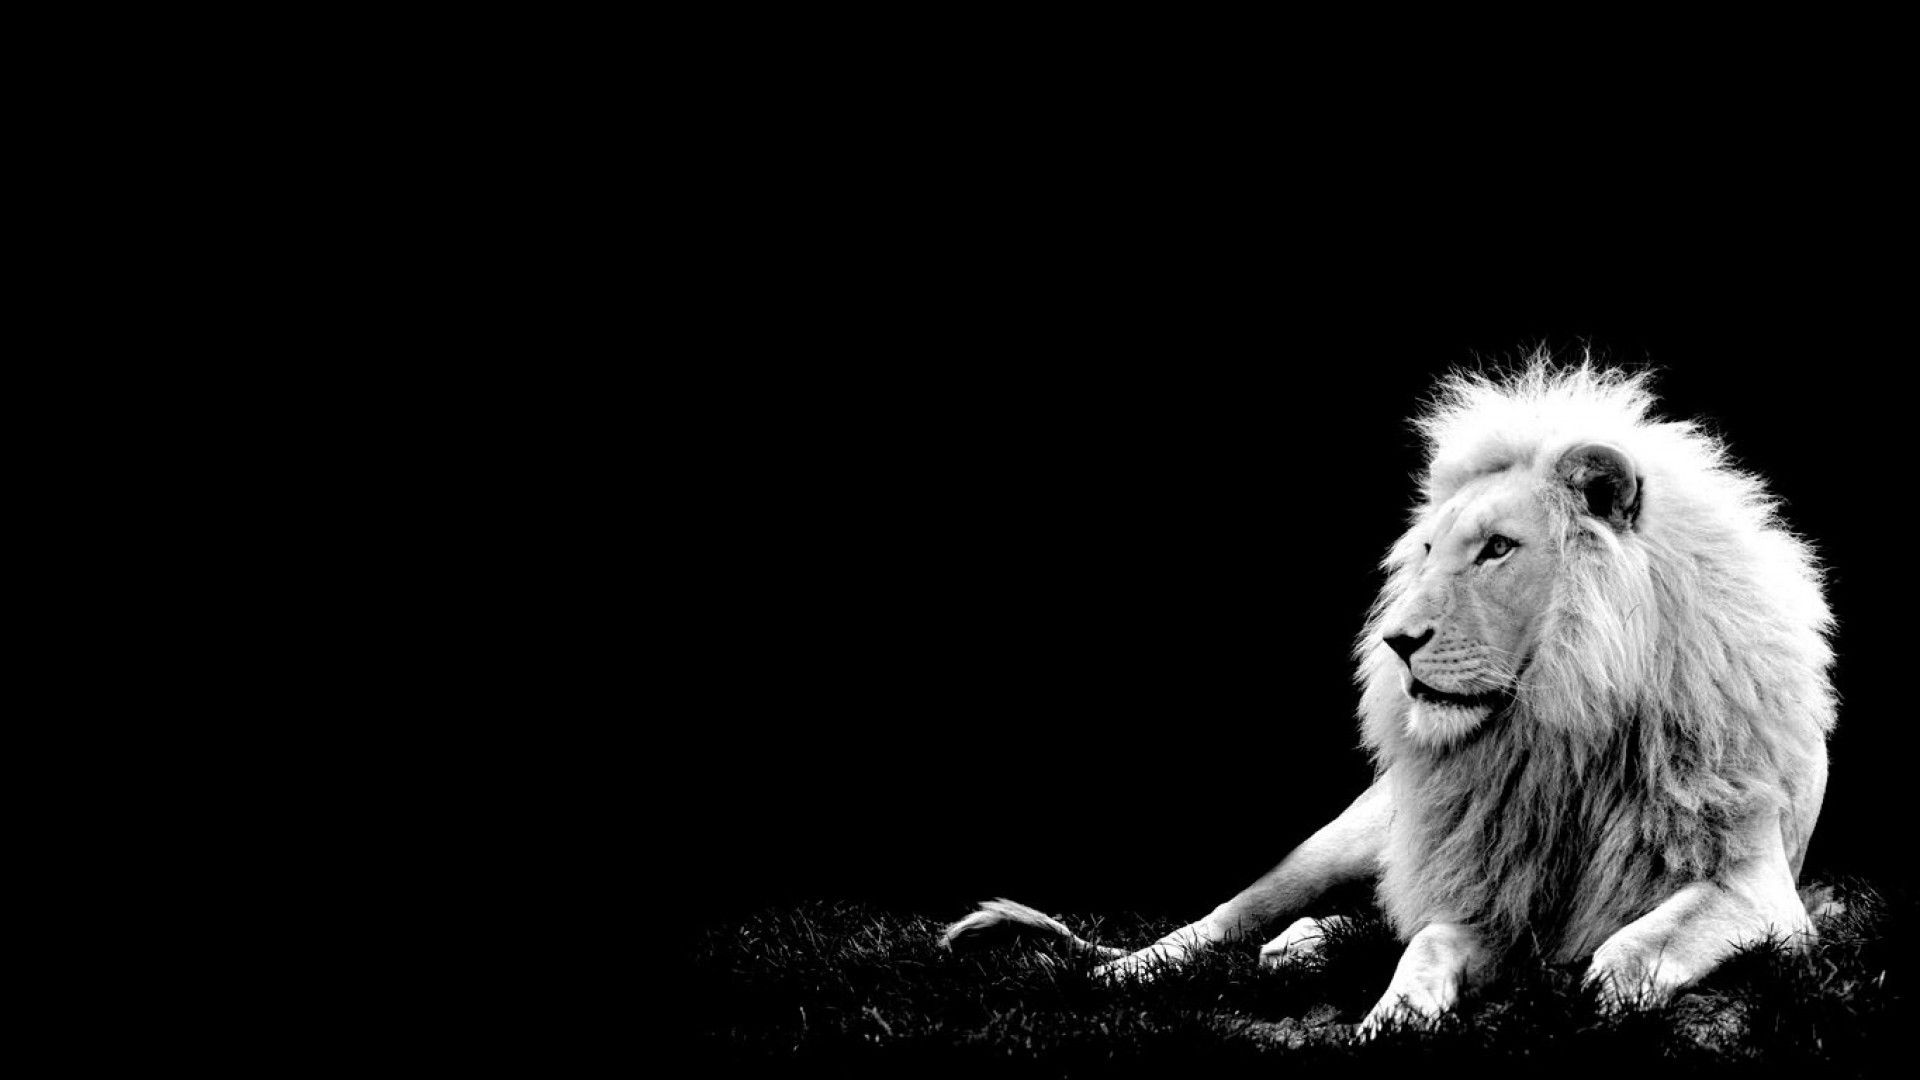 Pin By Live Wallpaper Hd On Animals Lion Wallpaper Lion Images Black Hd Wallpaper